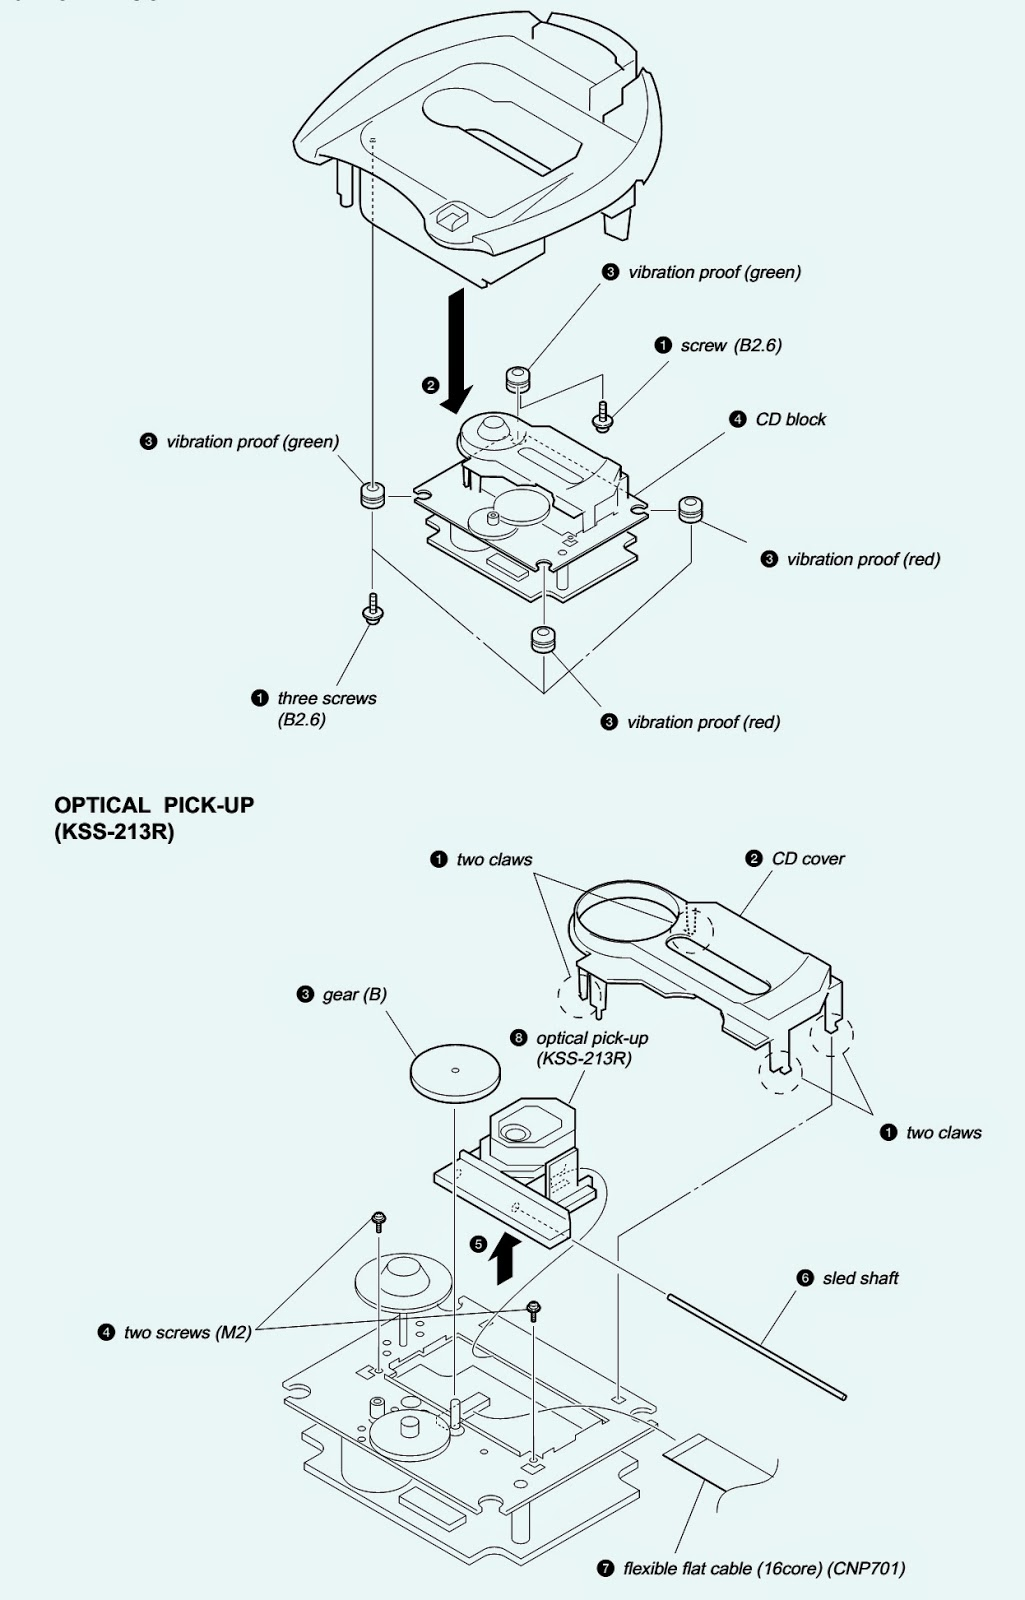 sony icf-cd843v - how to disassemble